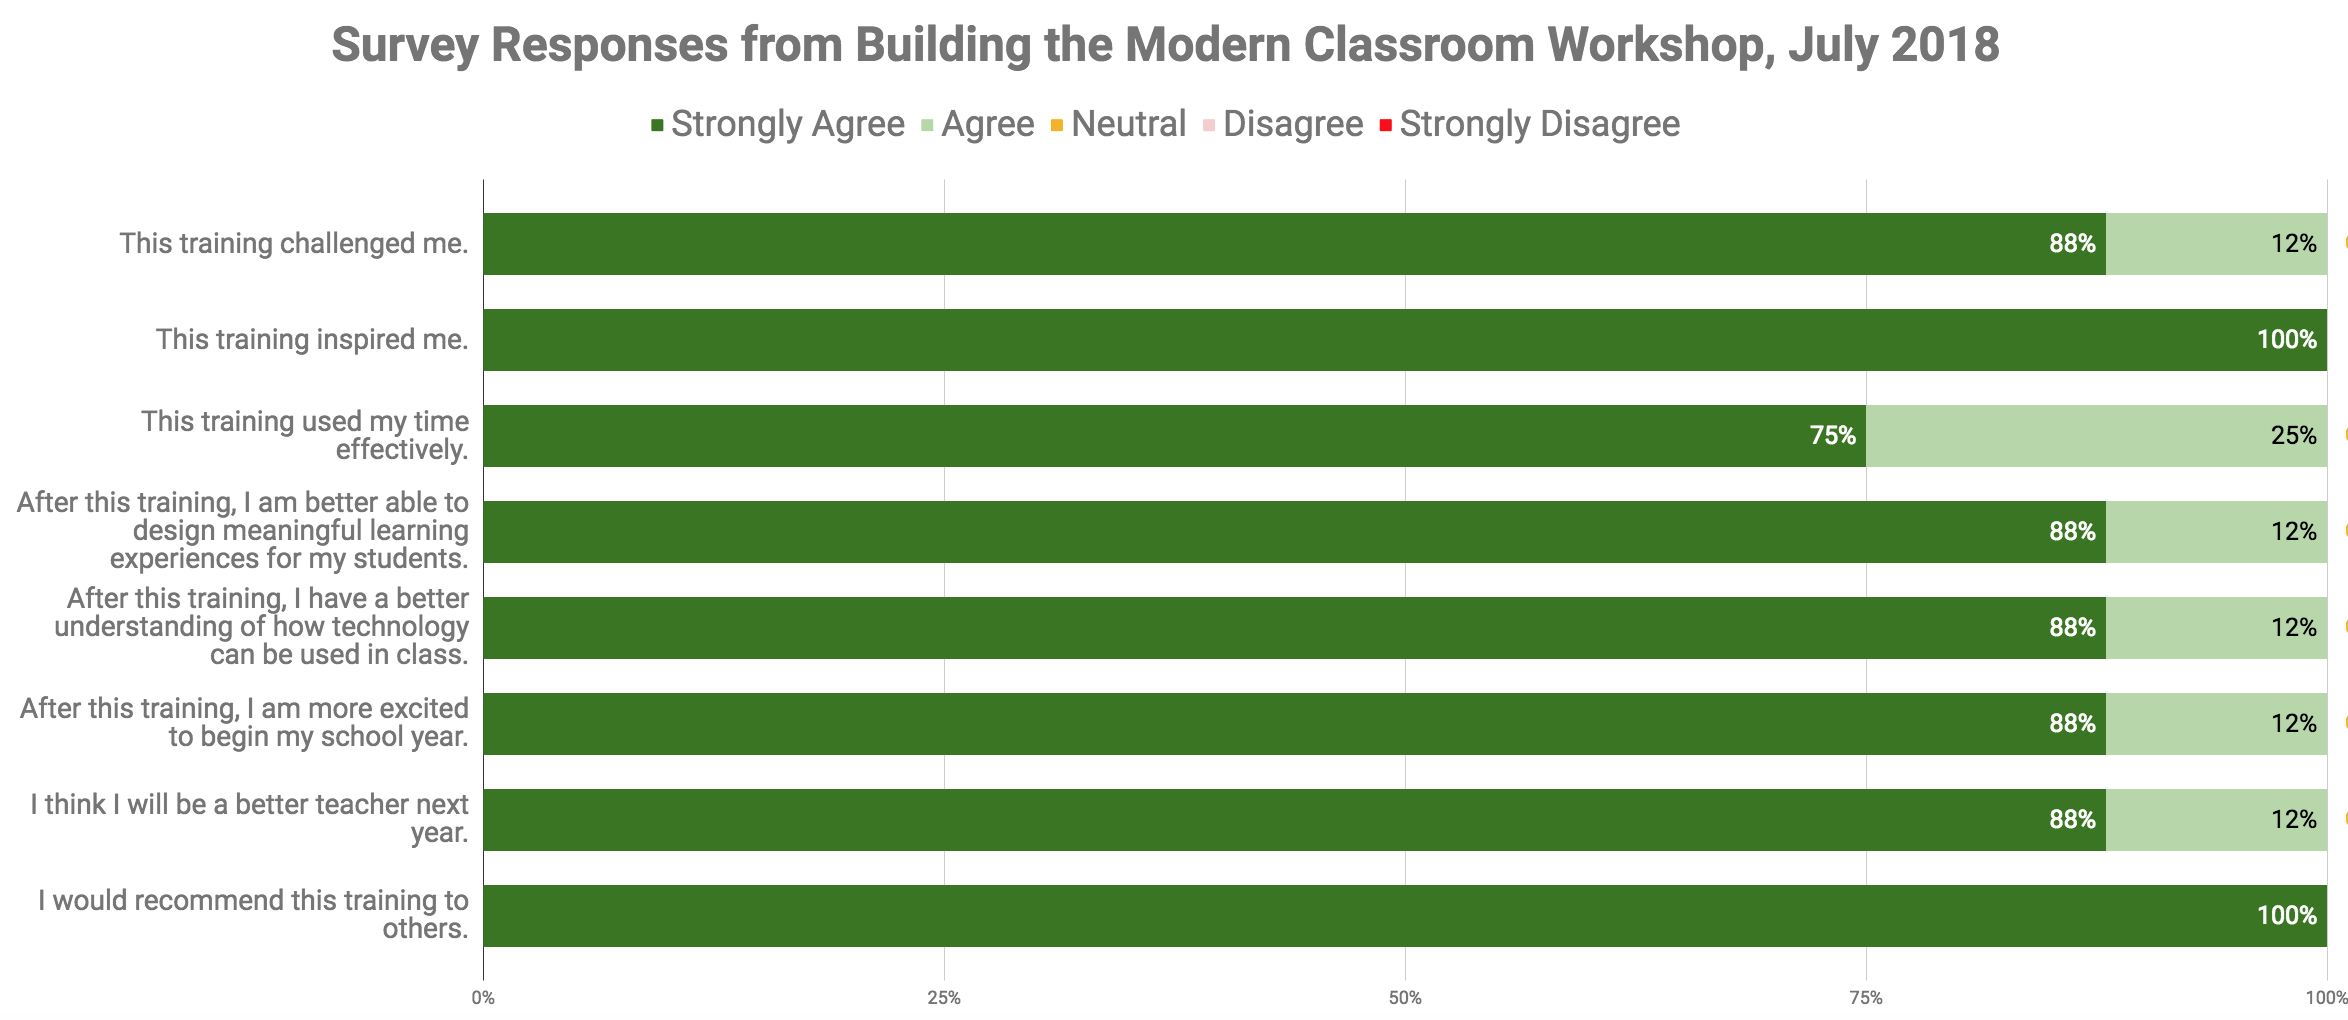 Survey Responses from Building the Modern Classroom Workshop, July 2018